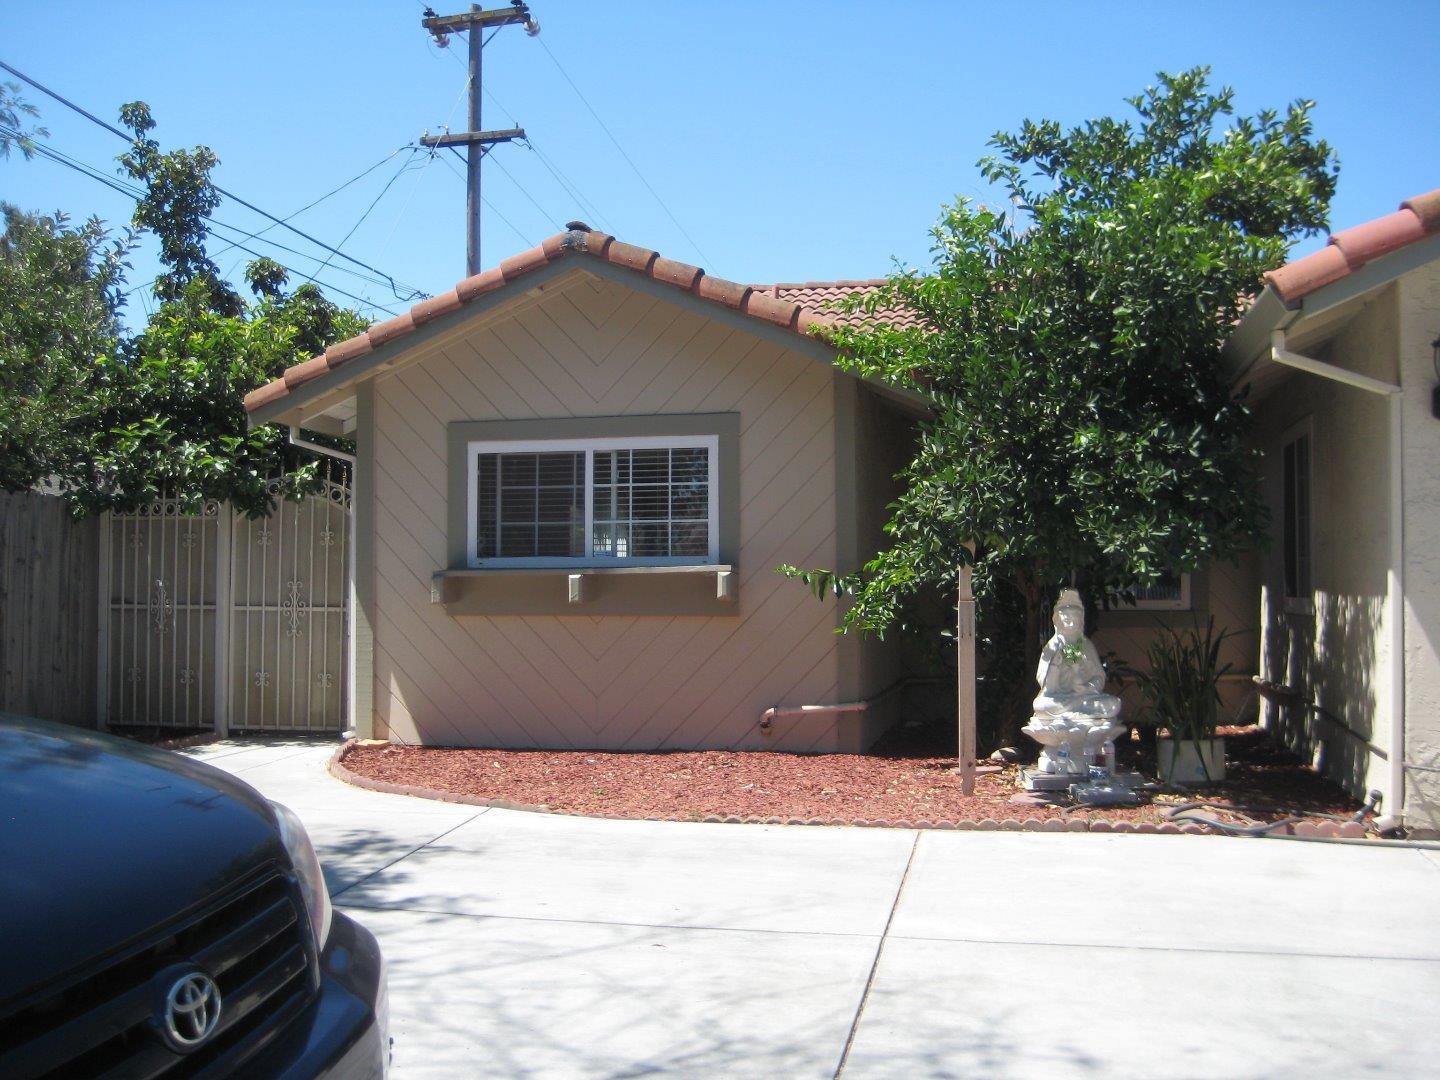 Additional photo for property listing at 1841 Mclaughlin Avenue  San Jose, カリフォルニア 95122 アメリカ合衆国